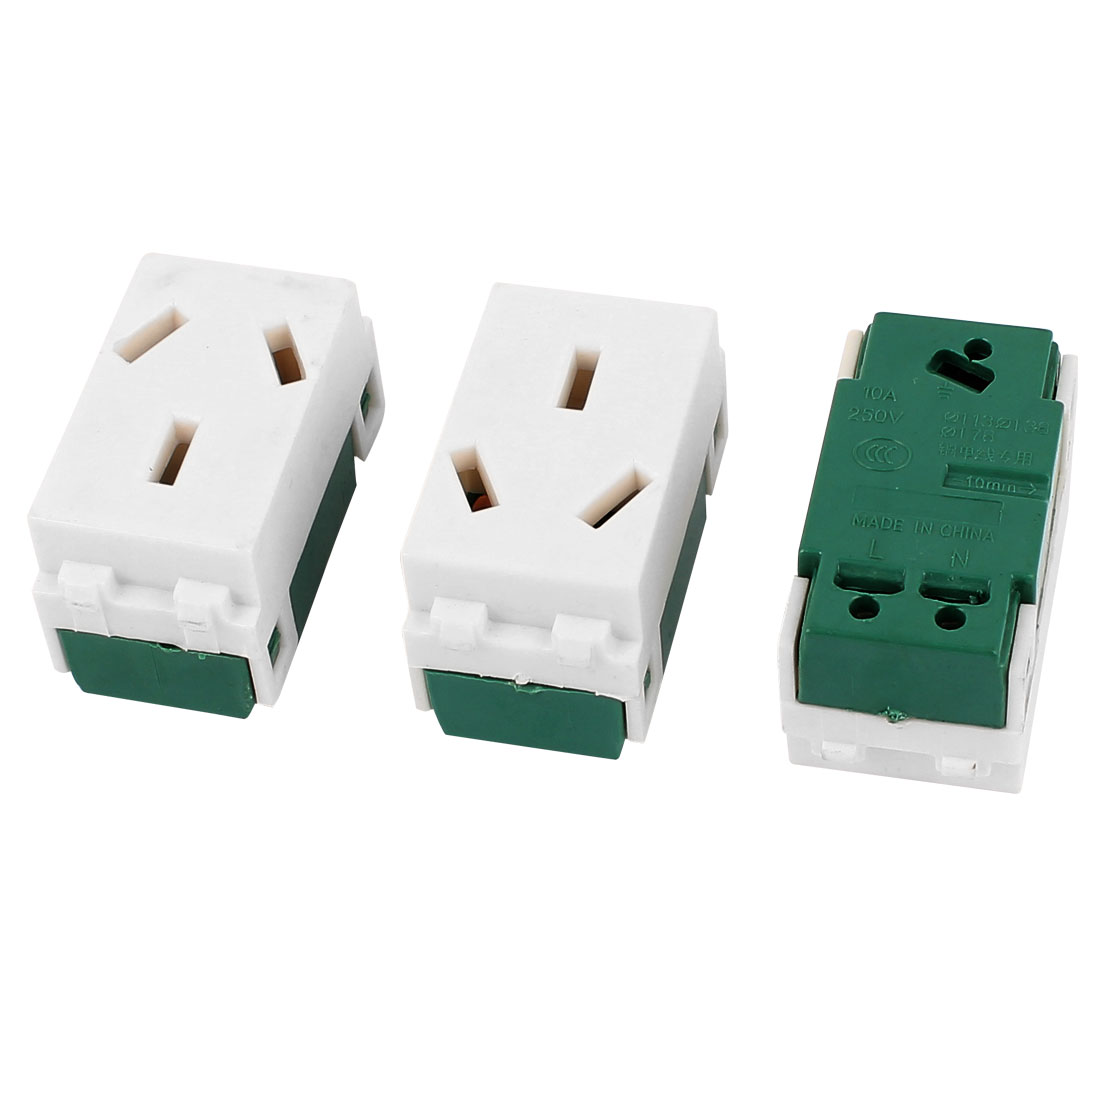 3 Pcs 250VAC 10A AU Socket Electrical Modular Power Outlet for 128 Wall Plate Panel